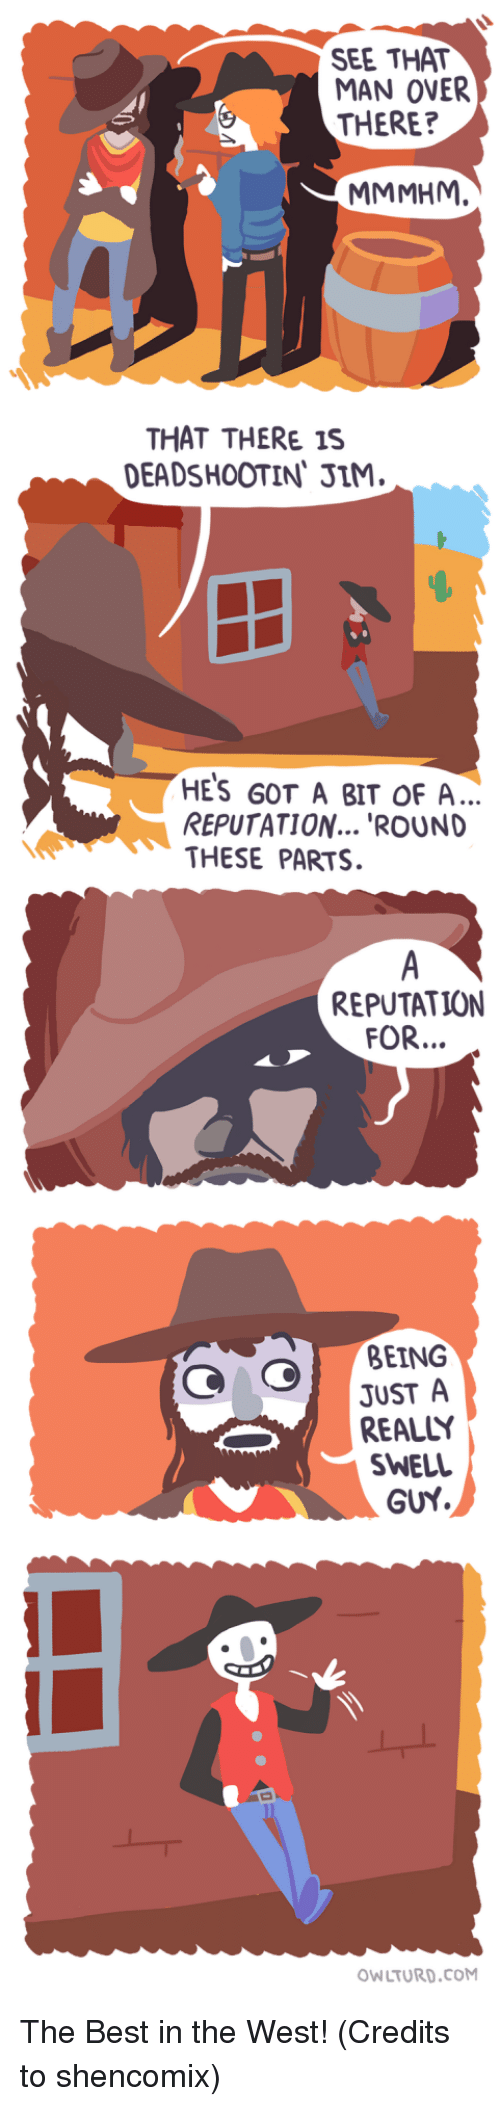 Best, Got, and Com: SEE THAT  MAN OVER  THERE?  MMMHM.  THAT THERE 1S  DEADSHOOTIN, JIM  HES GOT A BIT OF A  REPUTATION... 'ROUND  THESE PARTS.  REPUTATION  FOR...  BEING  JUST A  REALLY  SWELL  GUY  OWLTURD.COM The Best in the West! (Credits to shencomix)